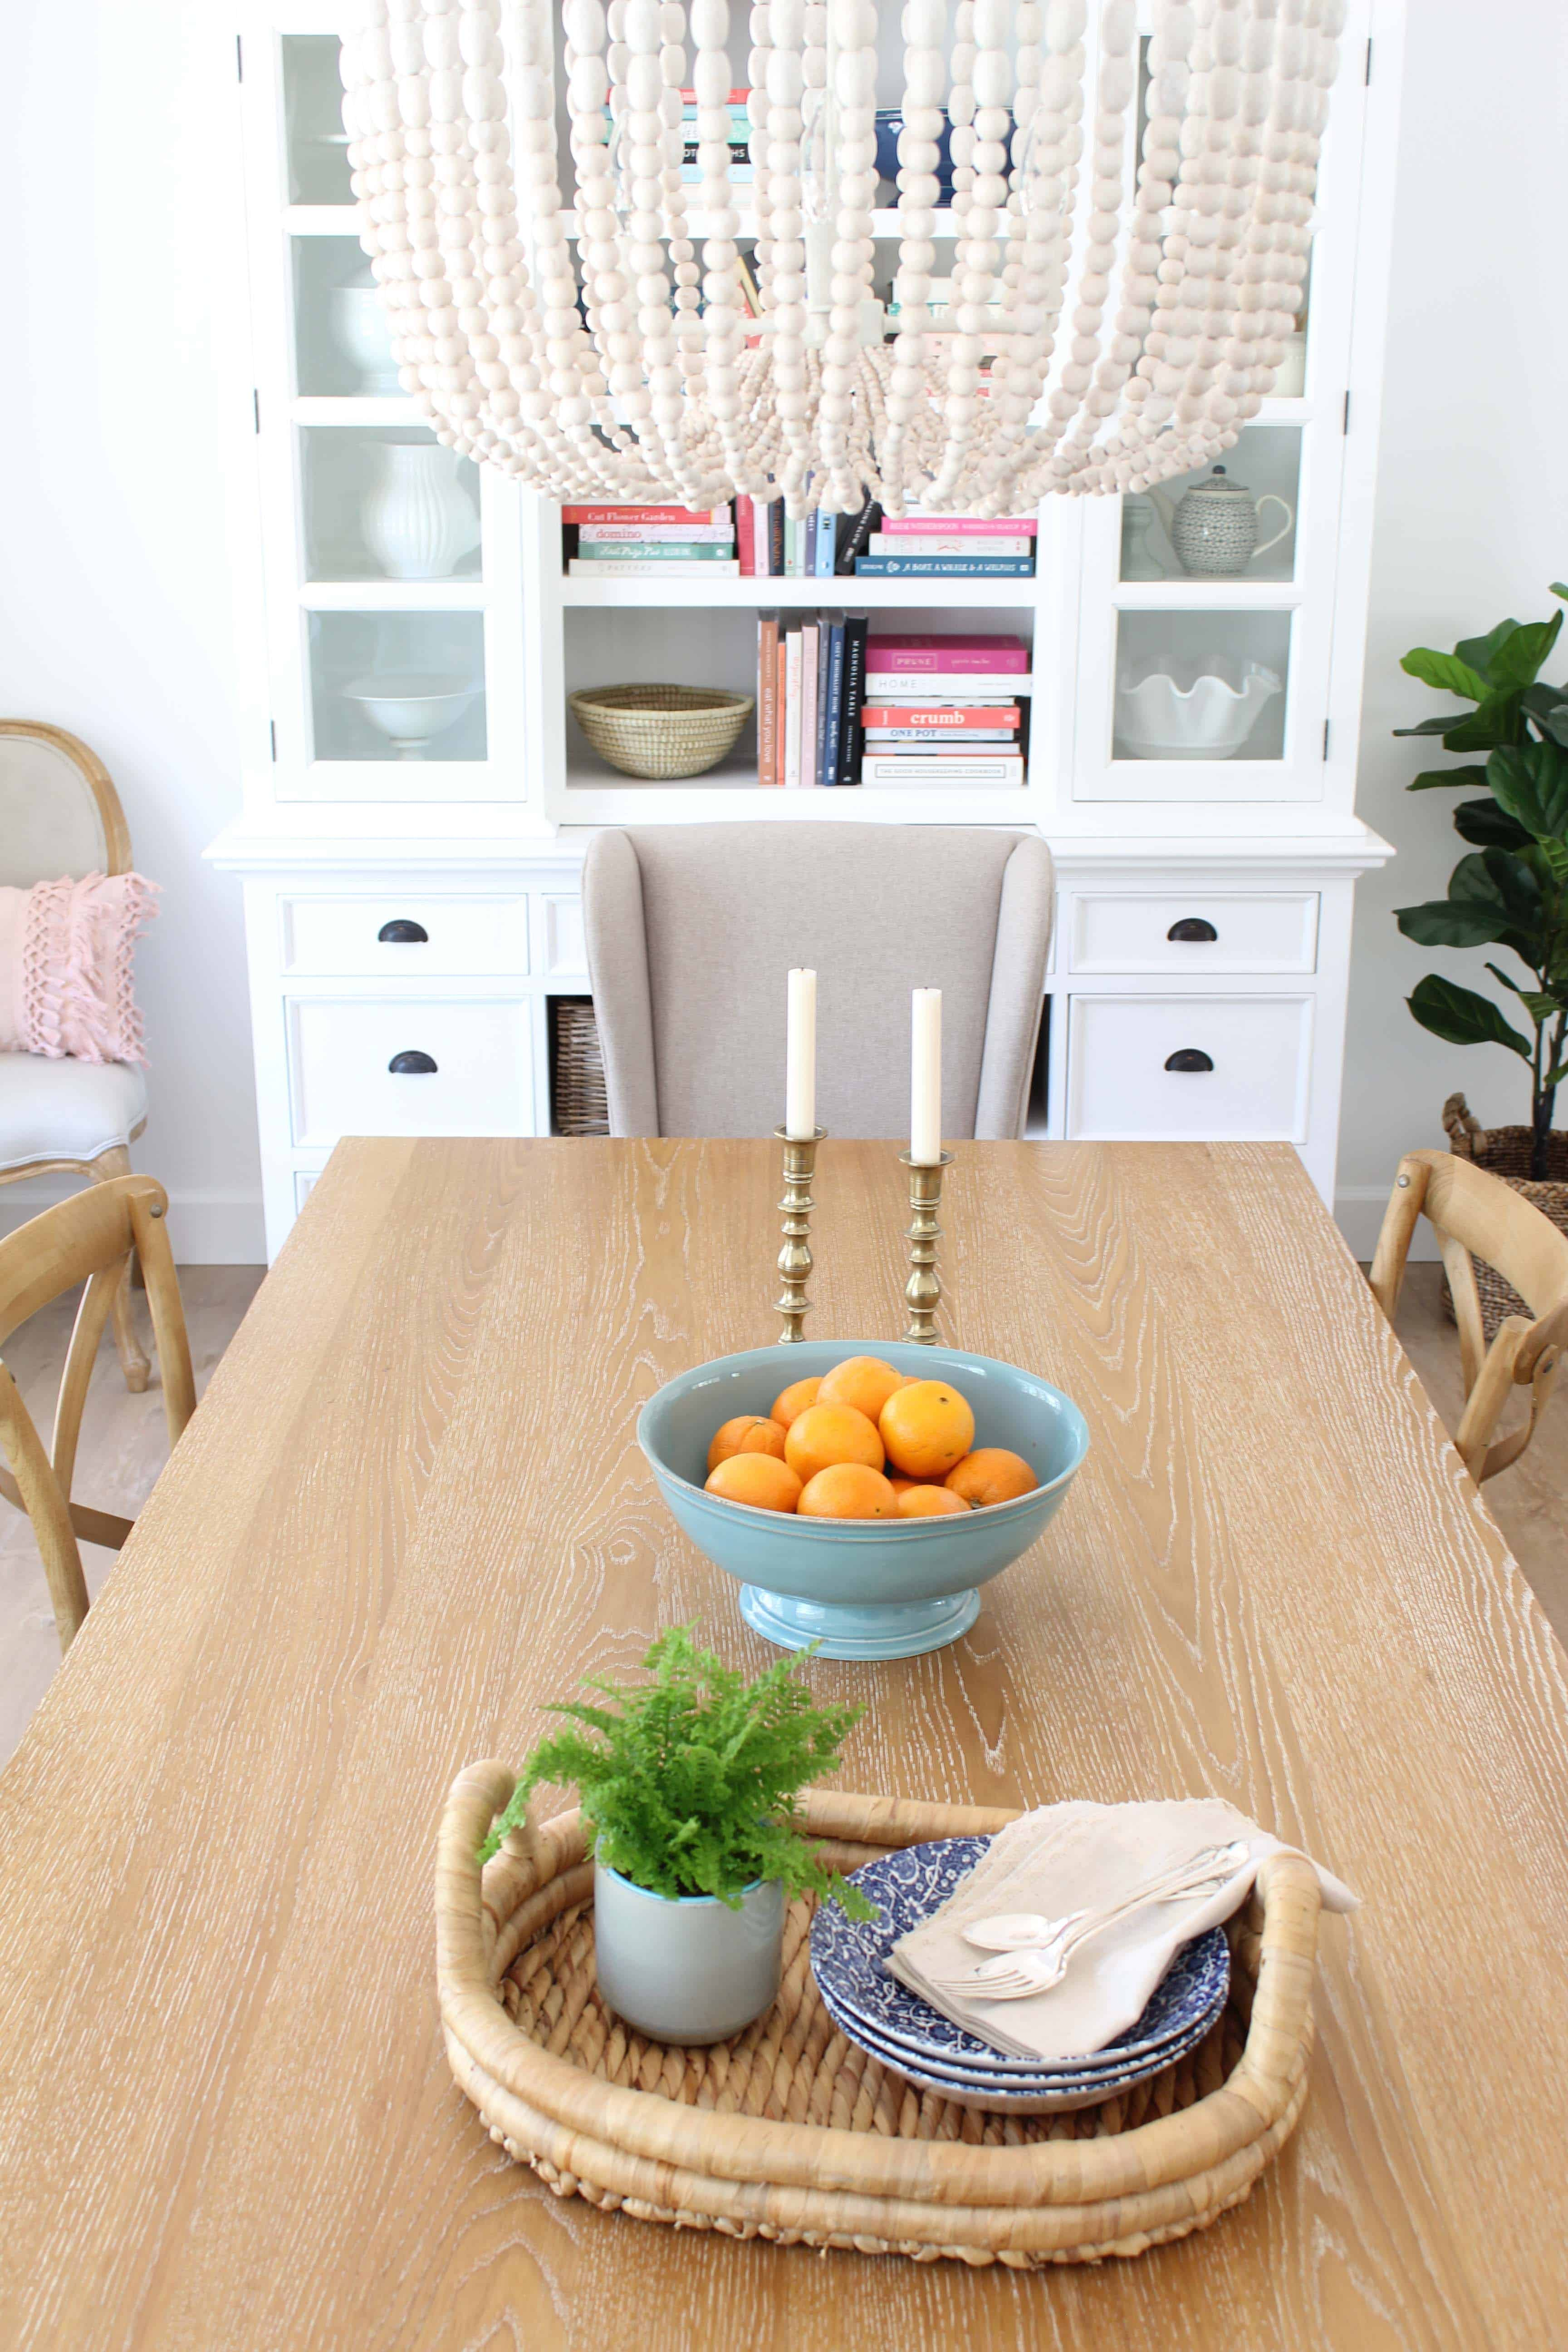 pier 1 dining room table, farmhouse bistro chairs, world market beaded chandelier, brass candlesticks, pottery barn aqua bowl with oranges